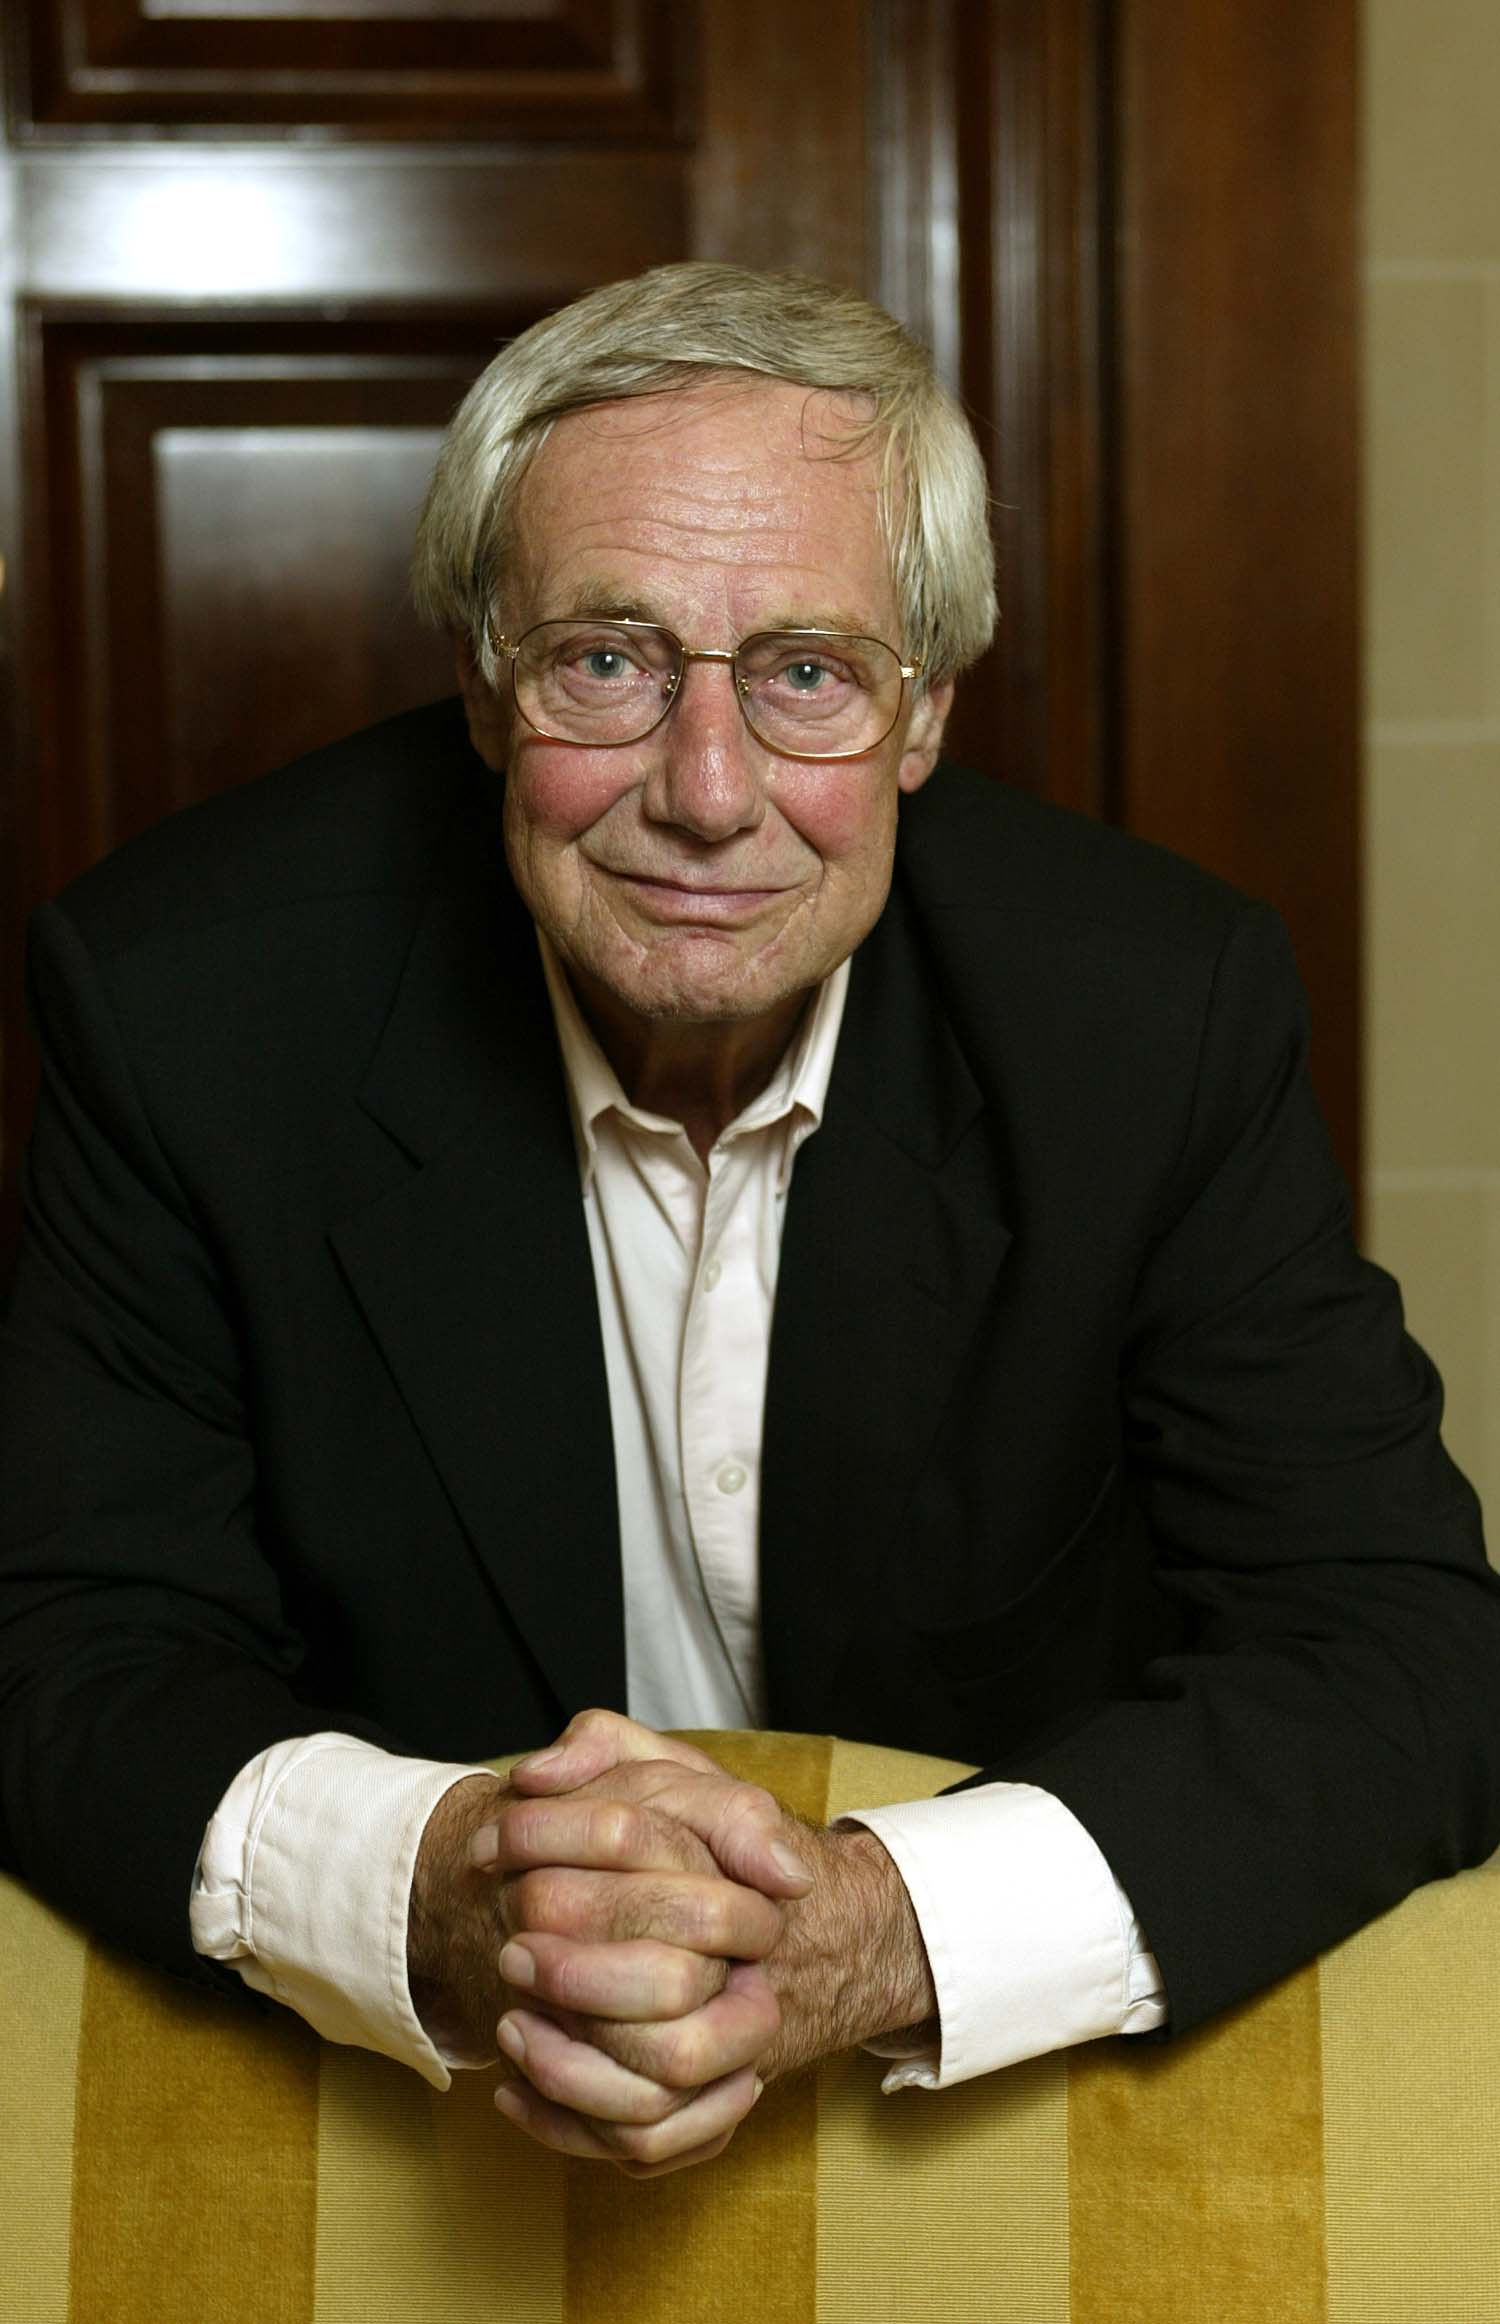 Barry Norman: Guy Ritchie shouldn't direct the next James Bond film